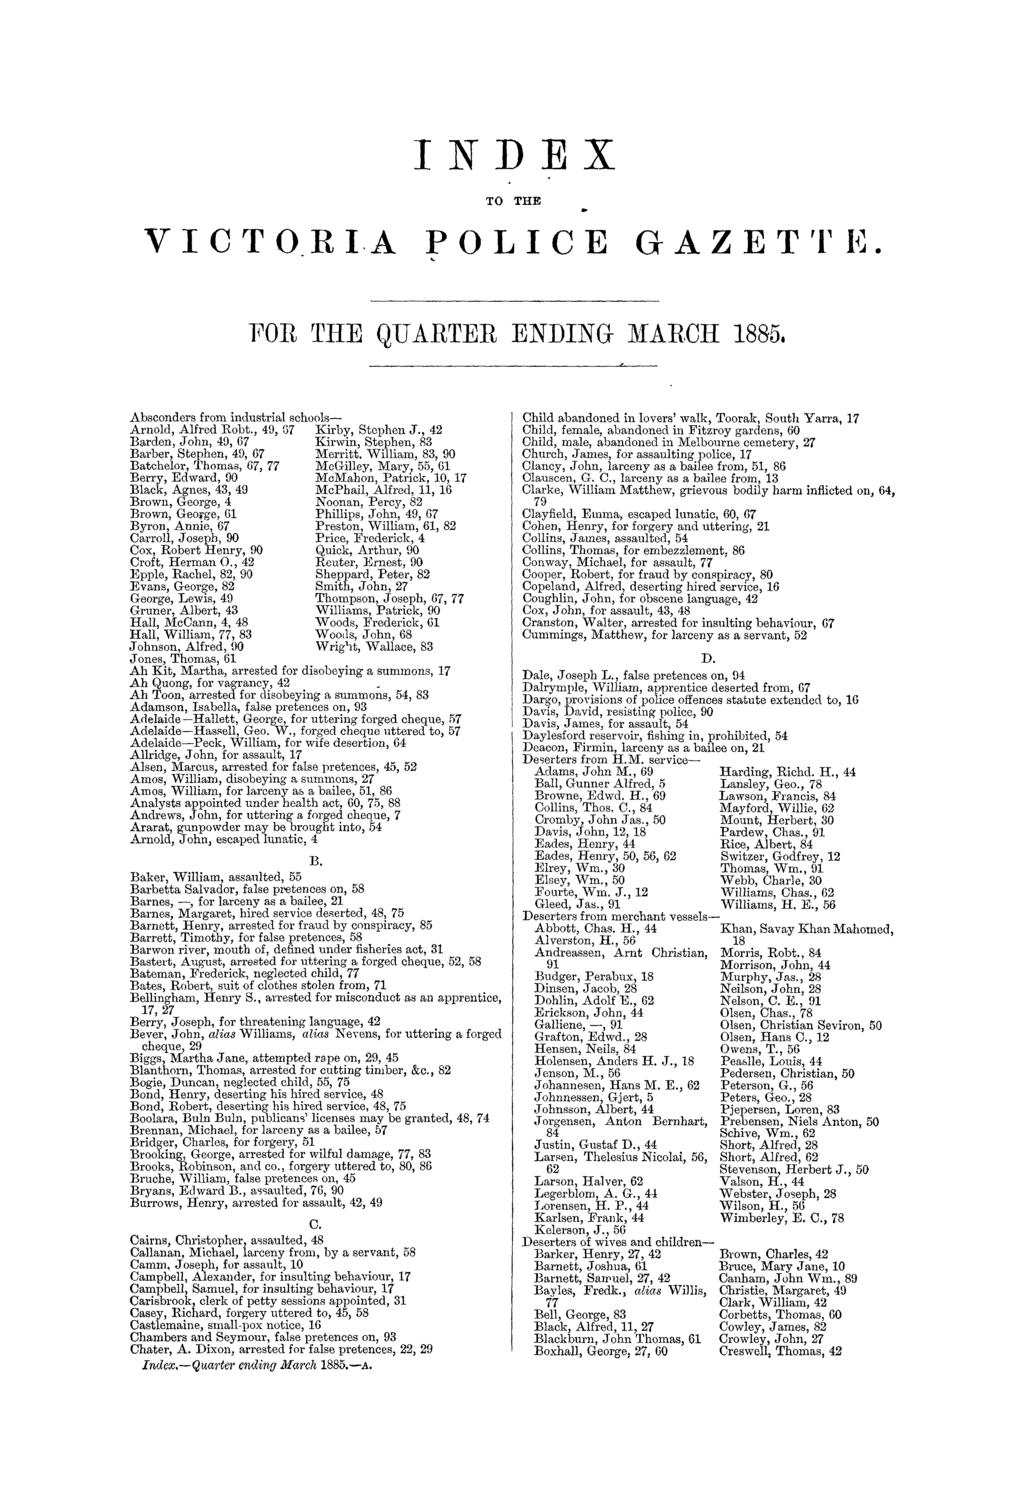 INDEX TO THE VICTORIA POLICE GAZETT Iii. TOR THE QUARTER ENDING MARCH 1885. Absconders from industrial schools- Arnold, Alfred Robt., 49, 67 Kirby, Stephen J.